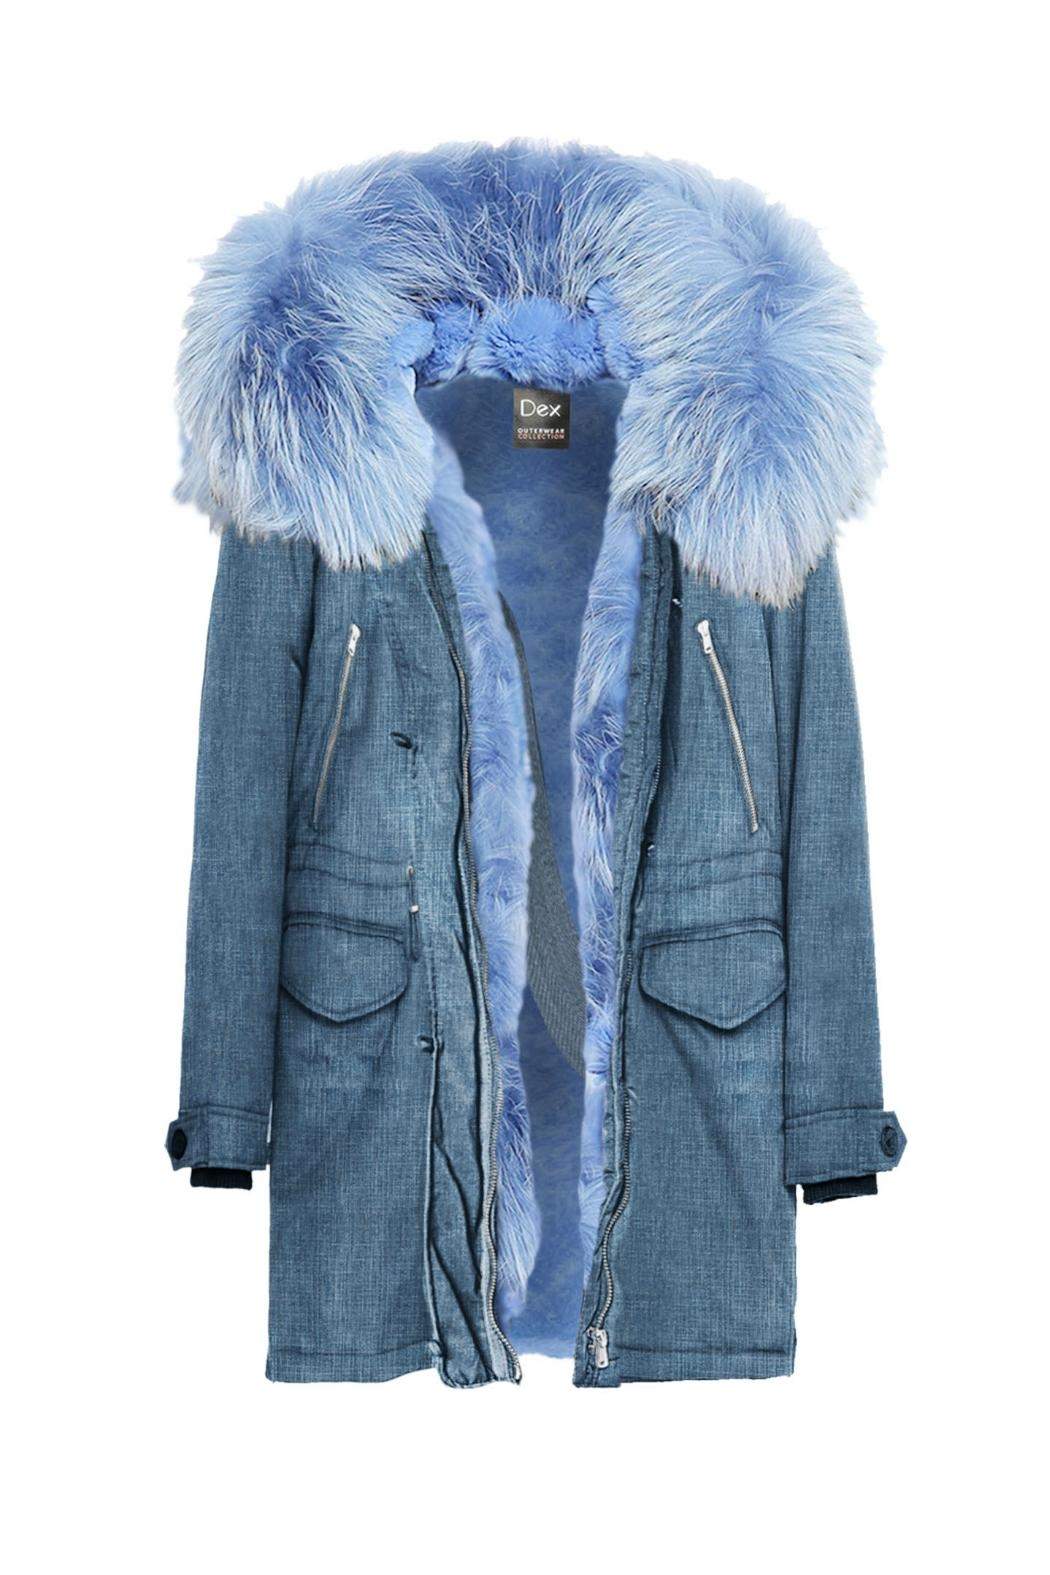 Dex Faux Fur Parka from New Jersey by Charlotte's Web Towaco ...